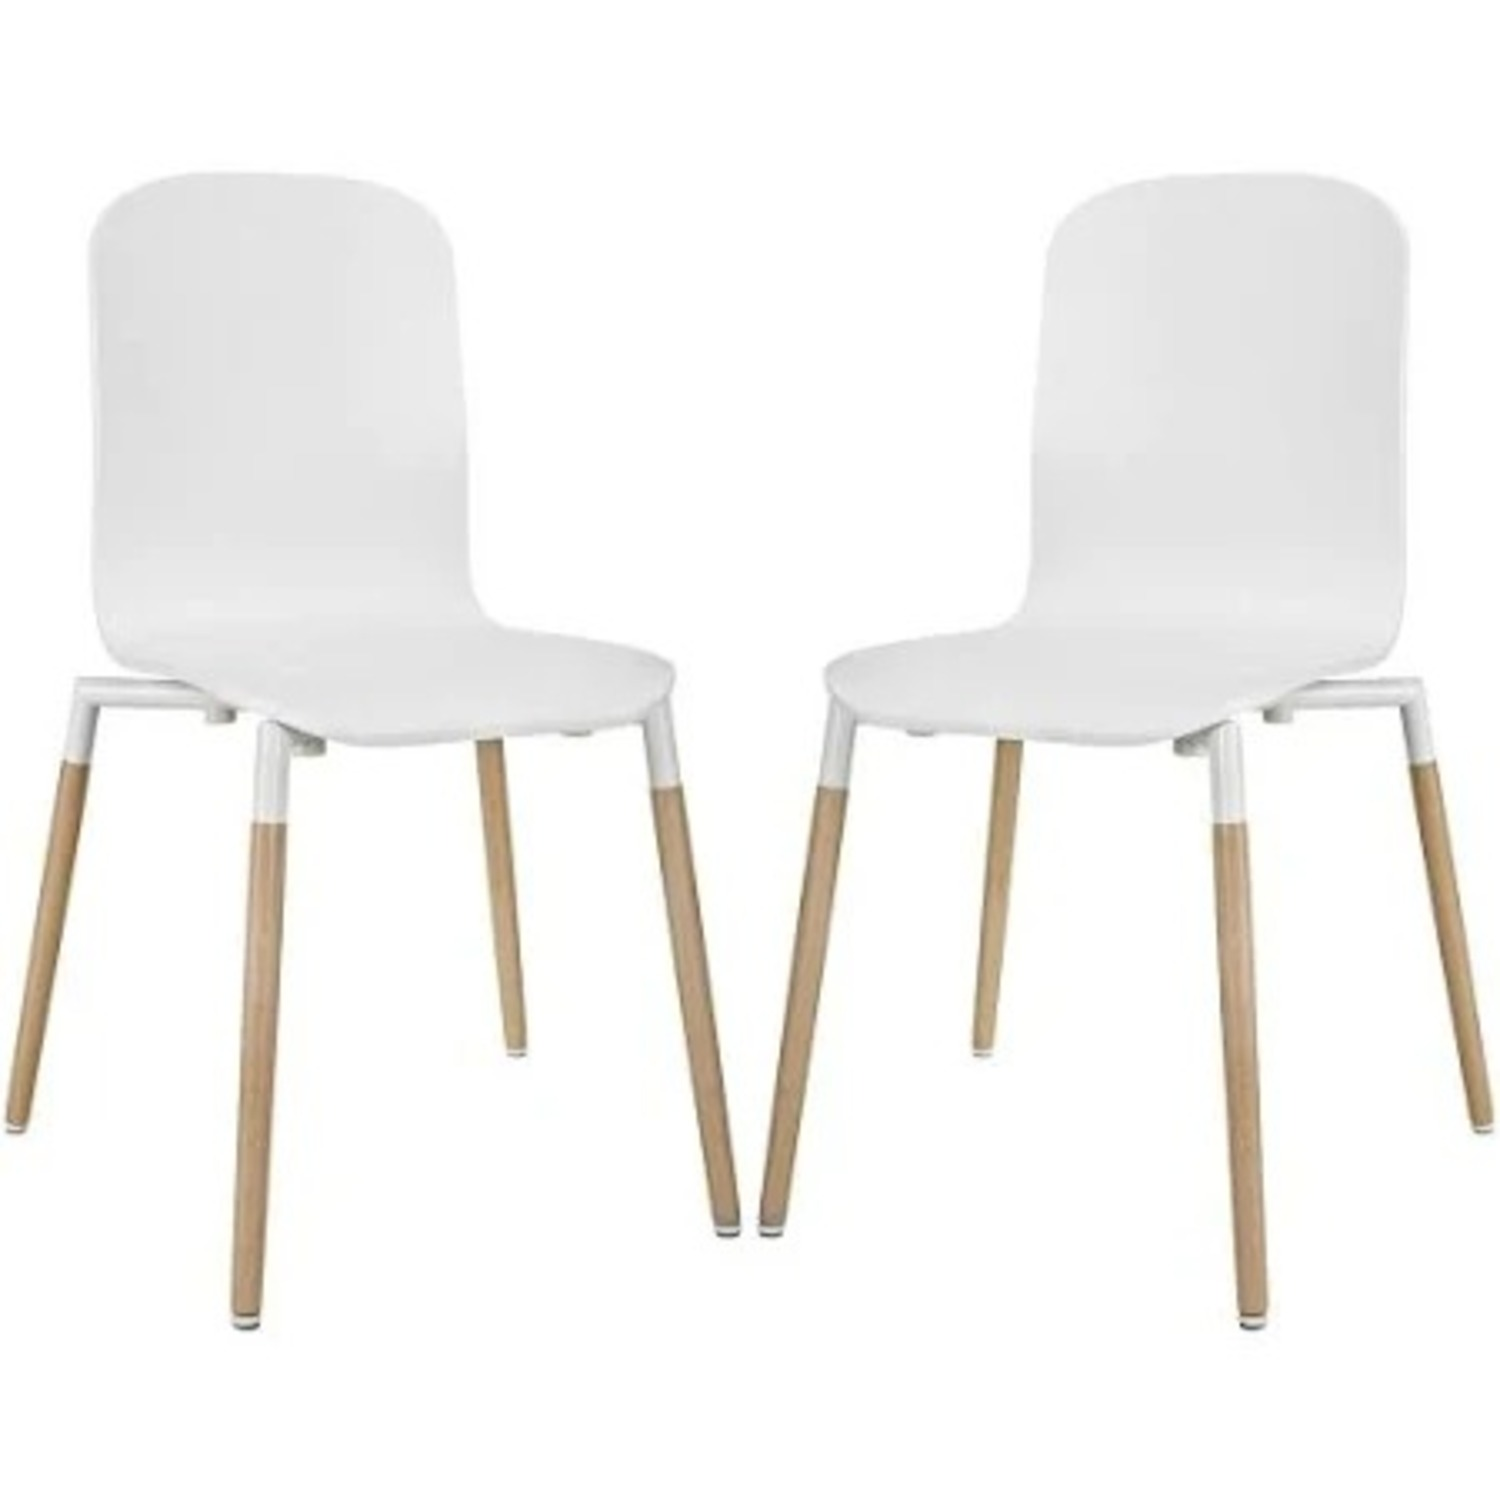 Modway Bentwood Chair set/2 - image-4